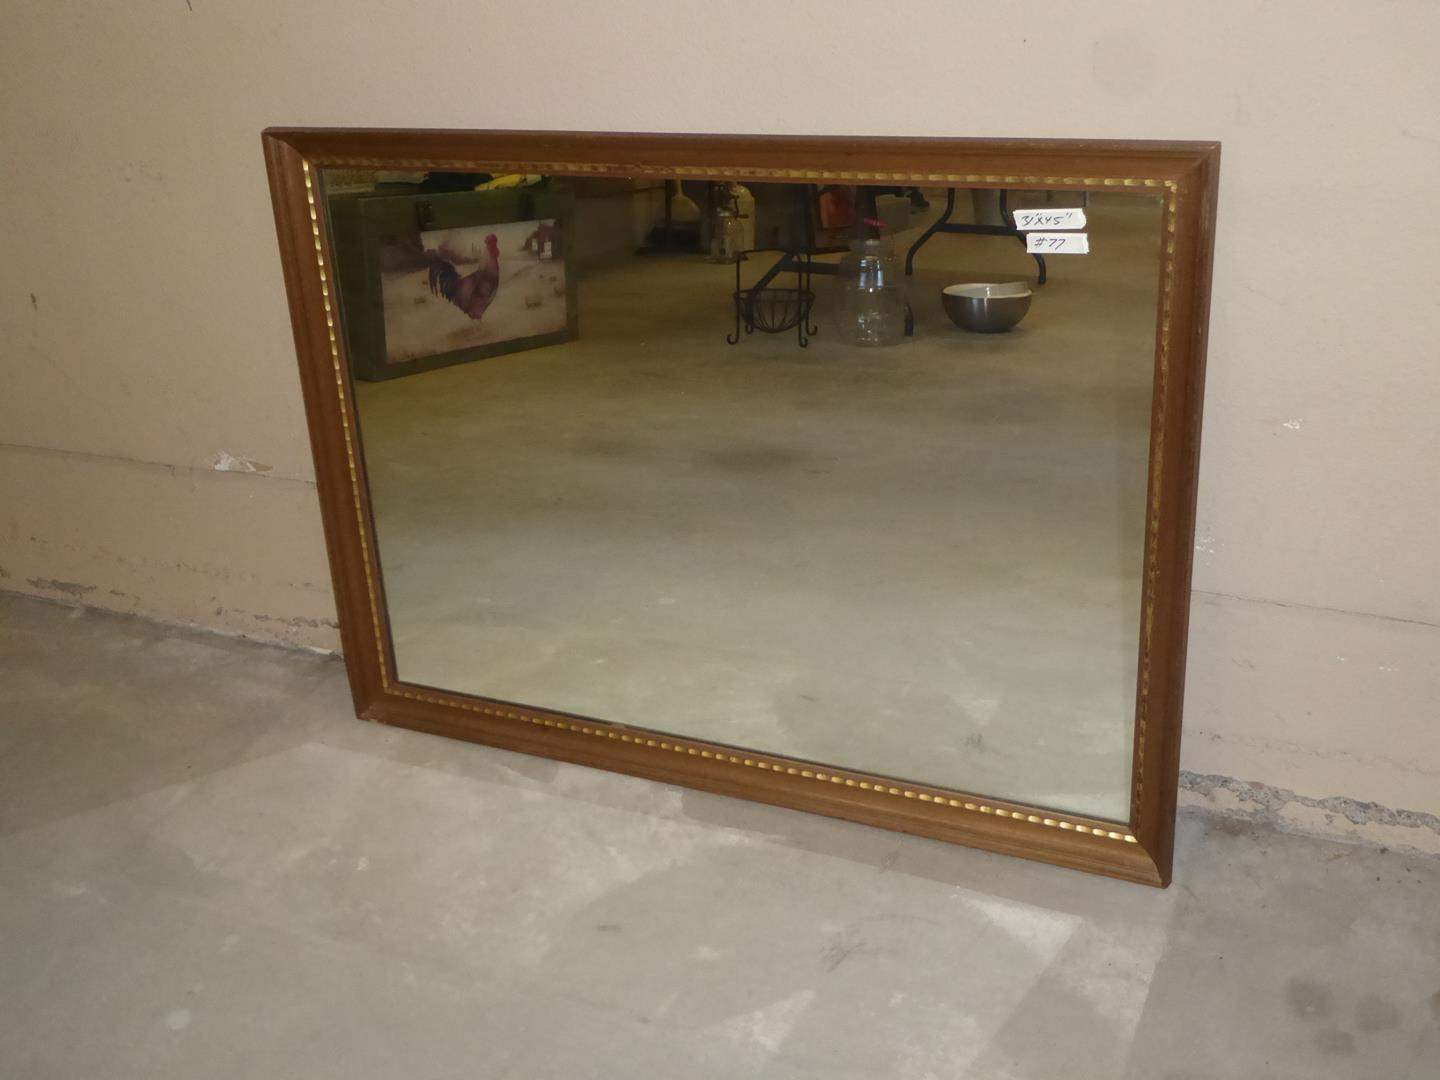 Lot # 77 - Vintage Wood Framed Wall Mirror (main image)